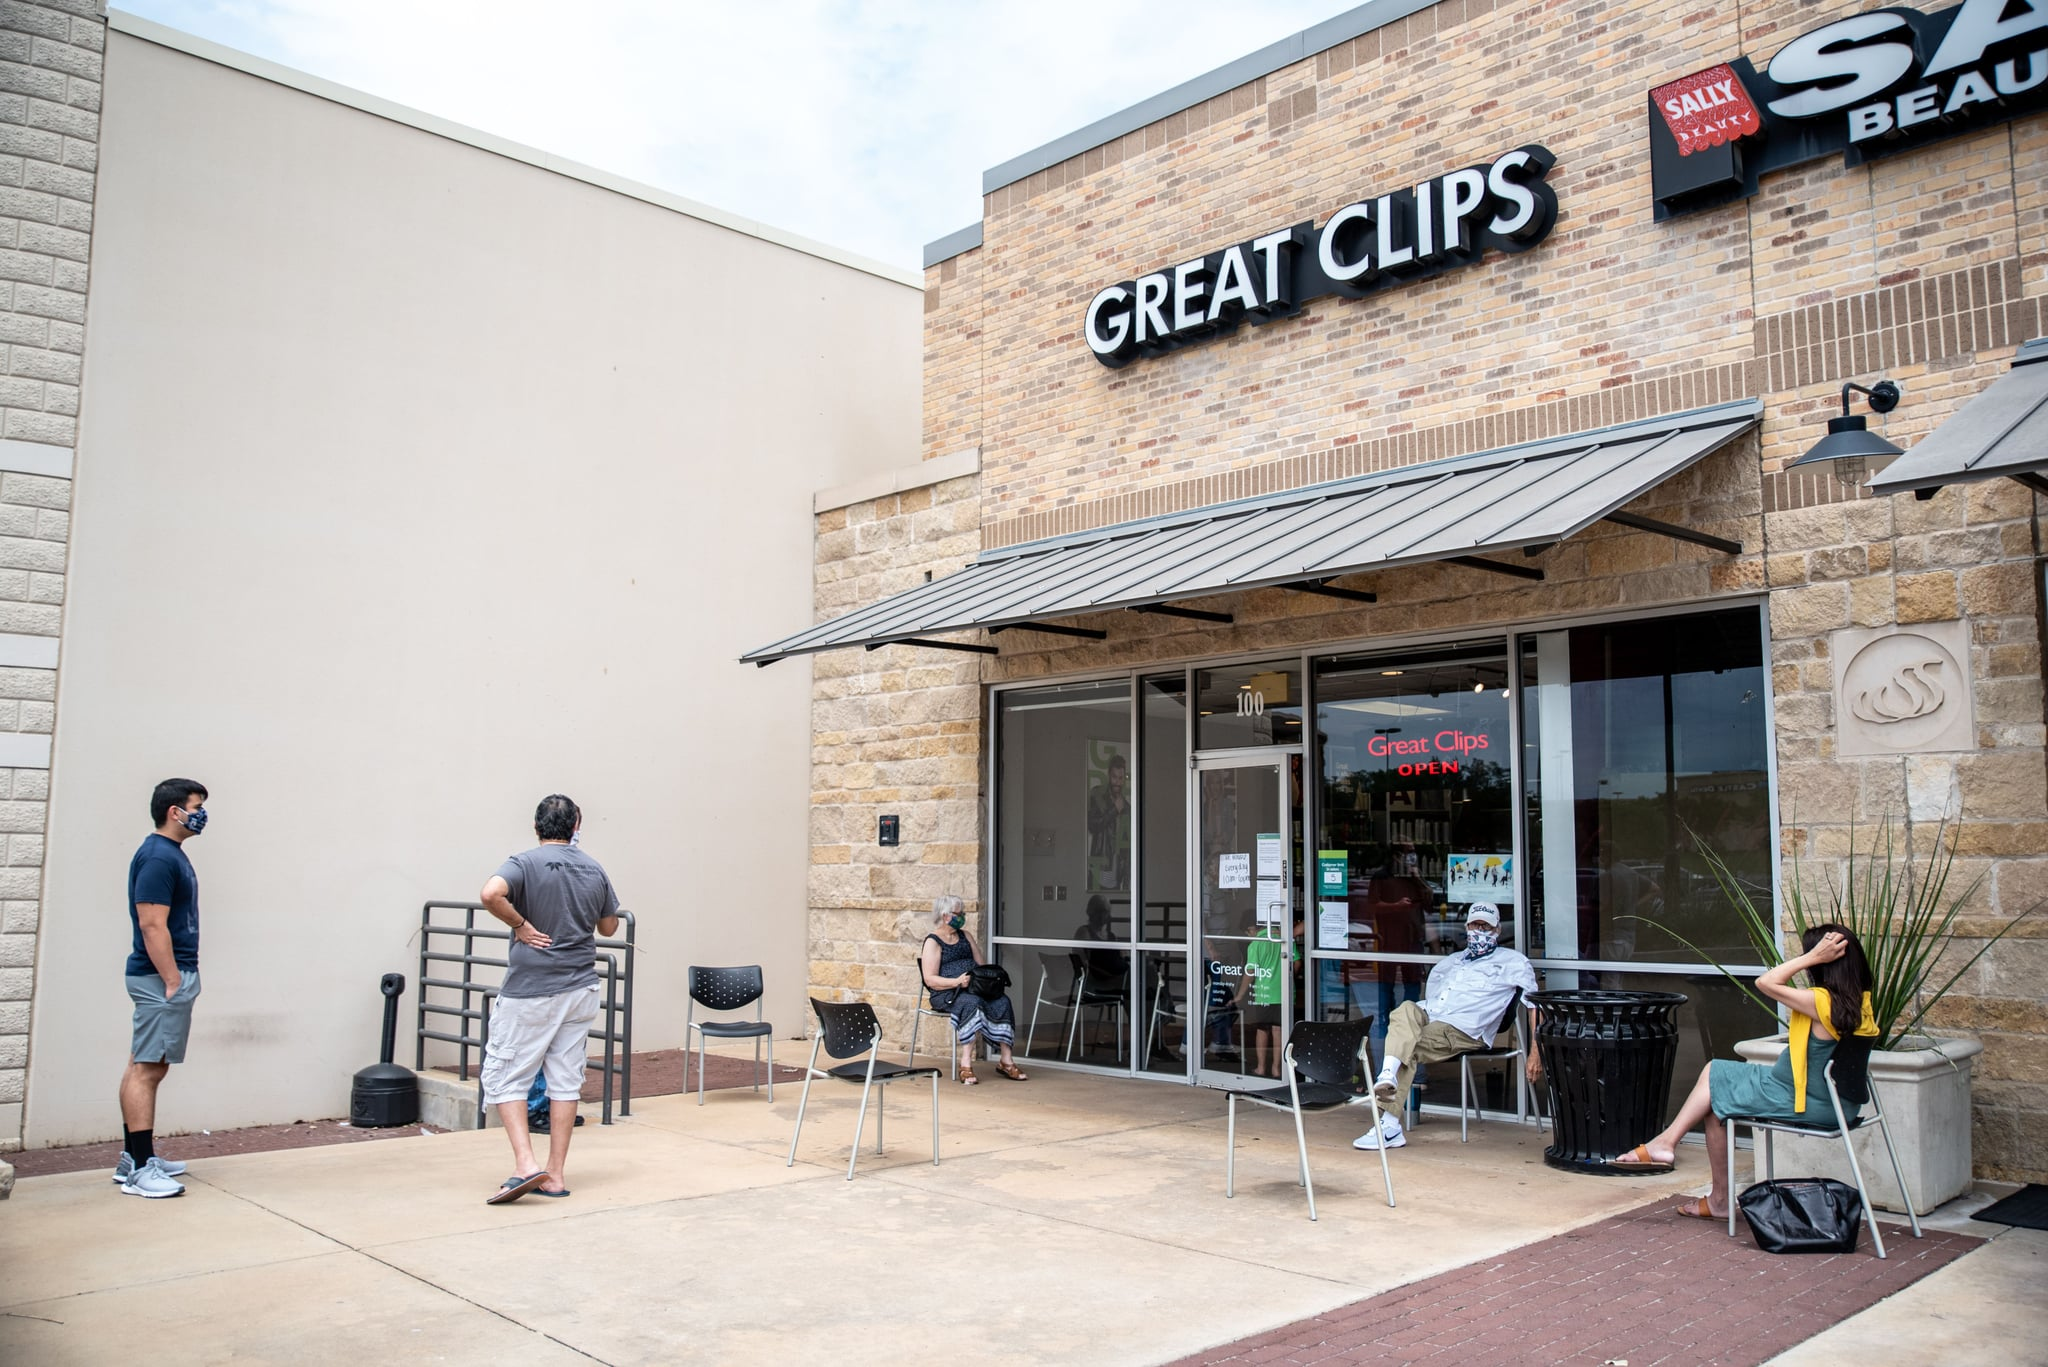 People wait for their haircuts outside Great Clips amid the coronavirus pandemic in Round Rock, Texas on May 8, 2020 following a slow reopening of the Texas economy. - A Texas hairdresser was sentenced to seven days in jail for keeping her salon open in violation of lockdown orders to slow the spread of the coronavirus, a move that state legislators decried on May 6, 2020 as